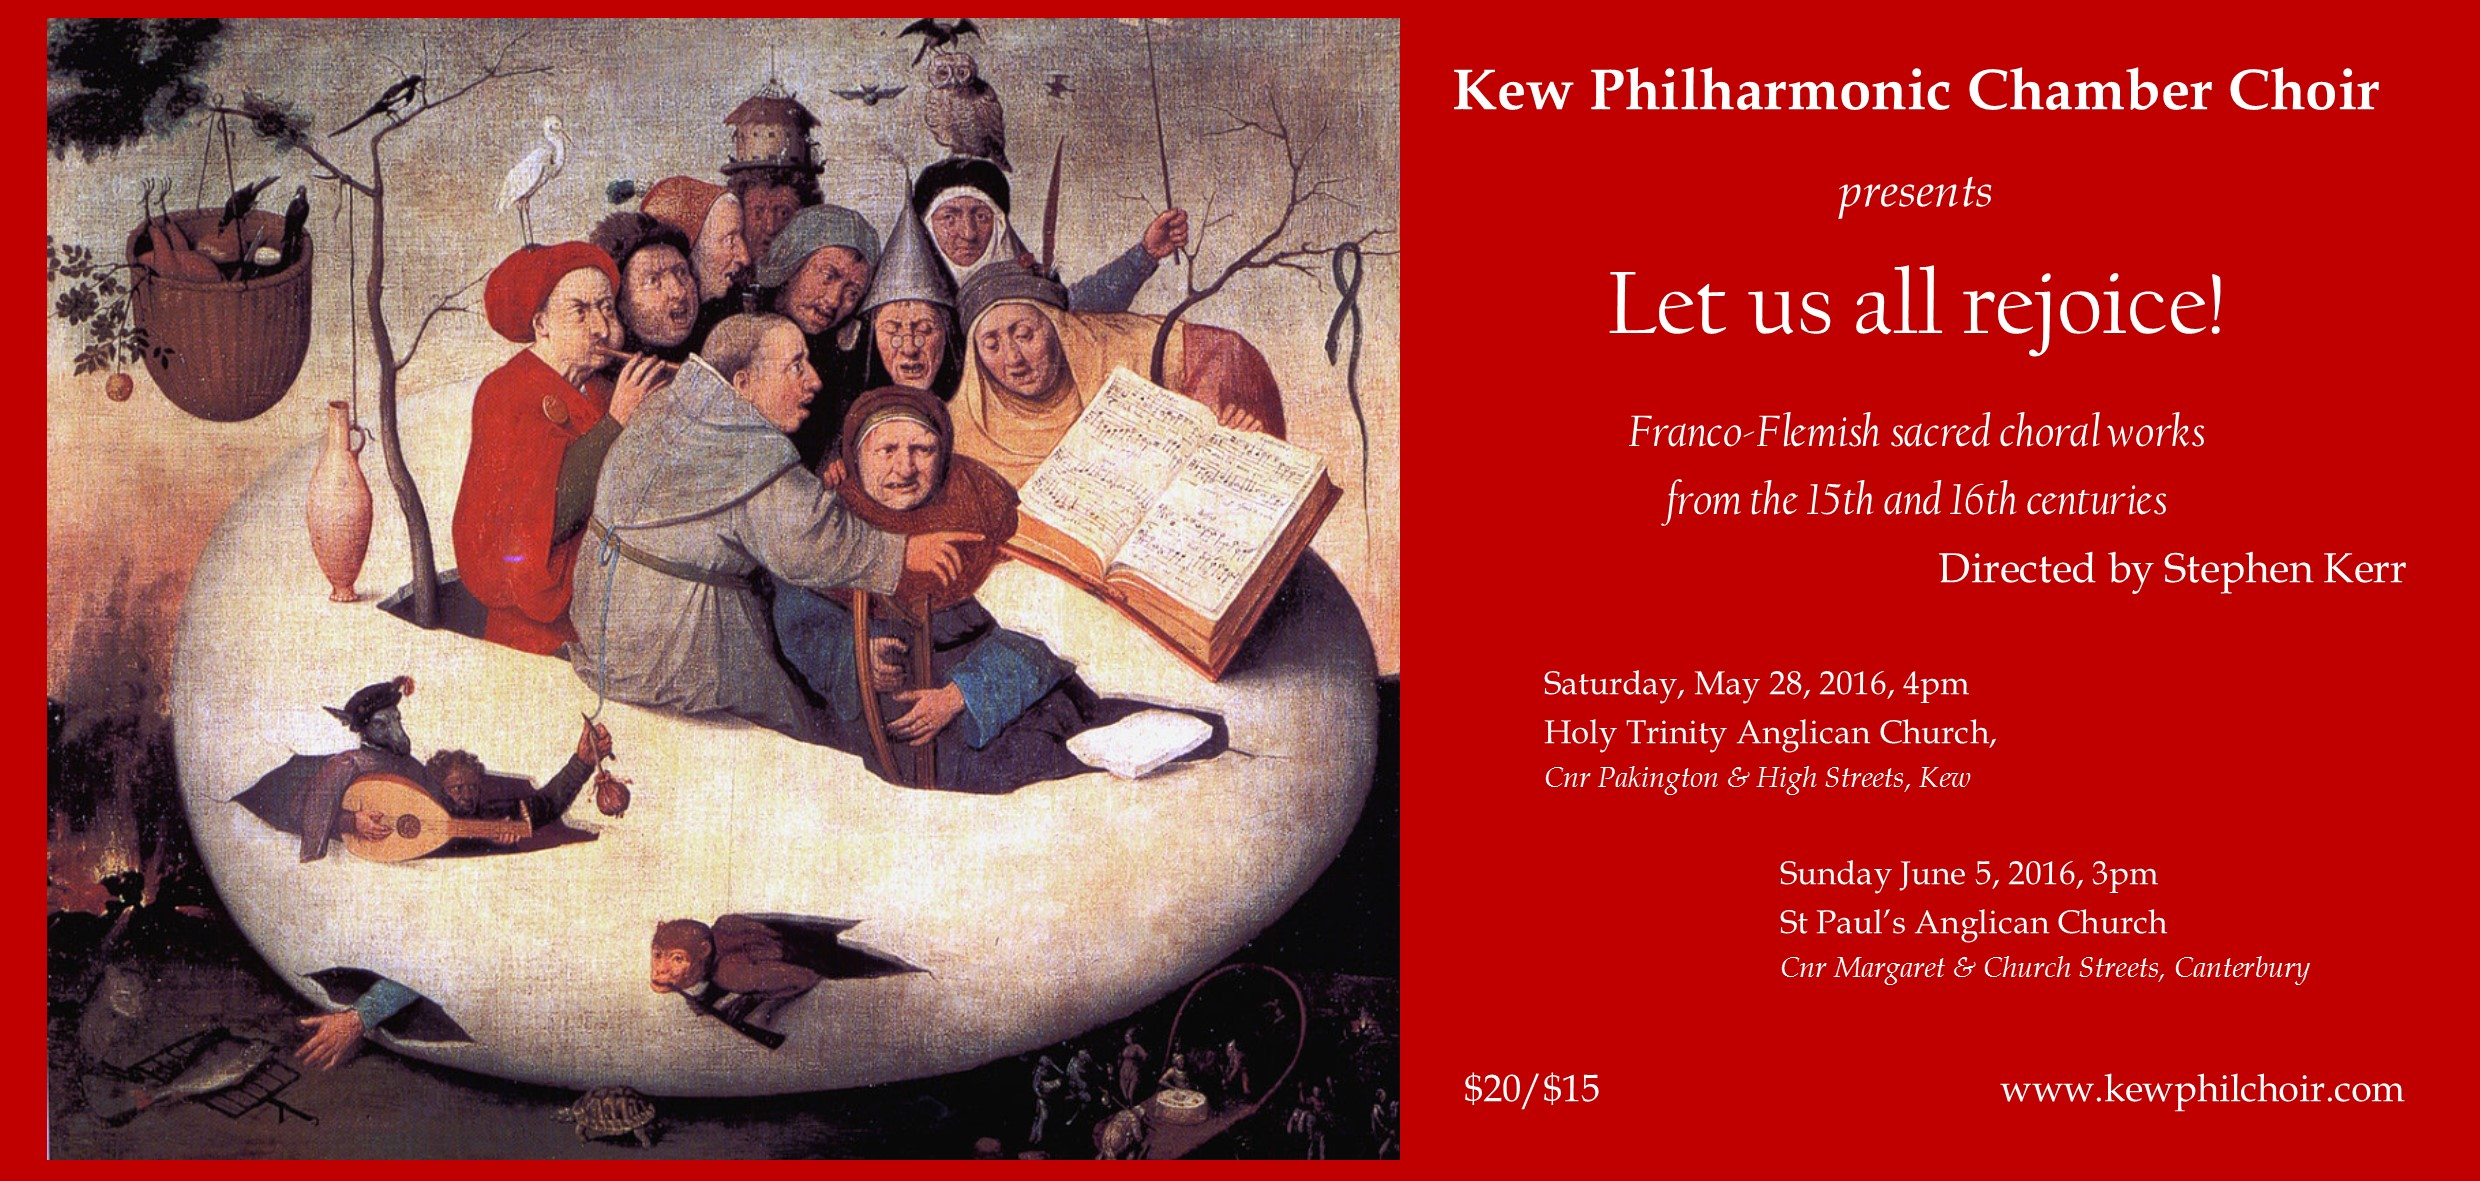 Kew Philharmonic Chamber Choir: Let us all rejoice! flyer